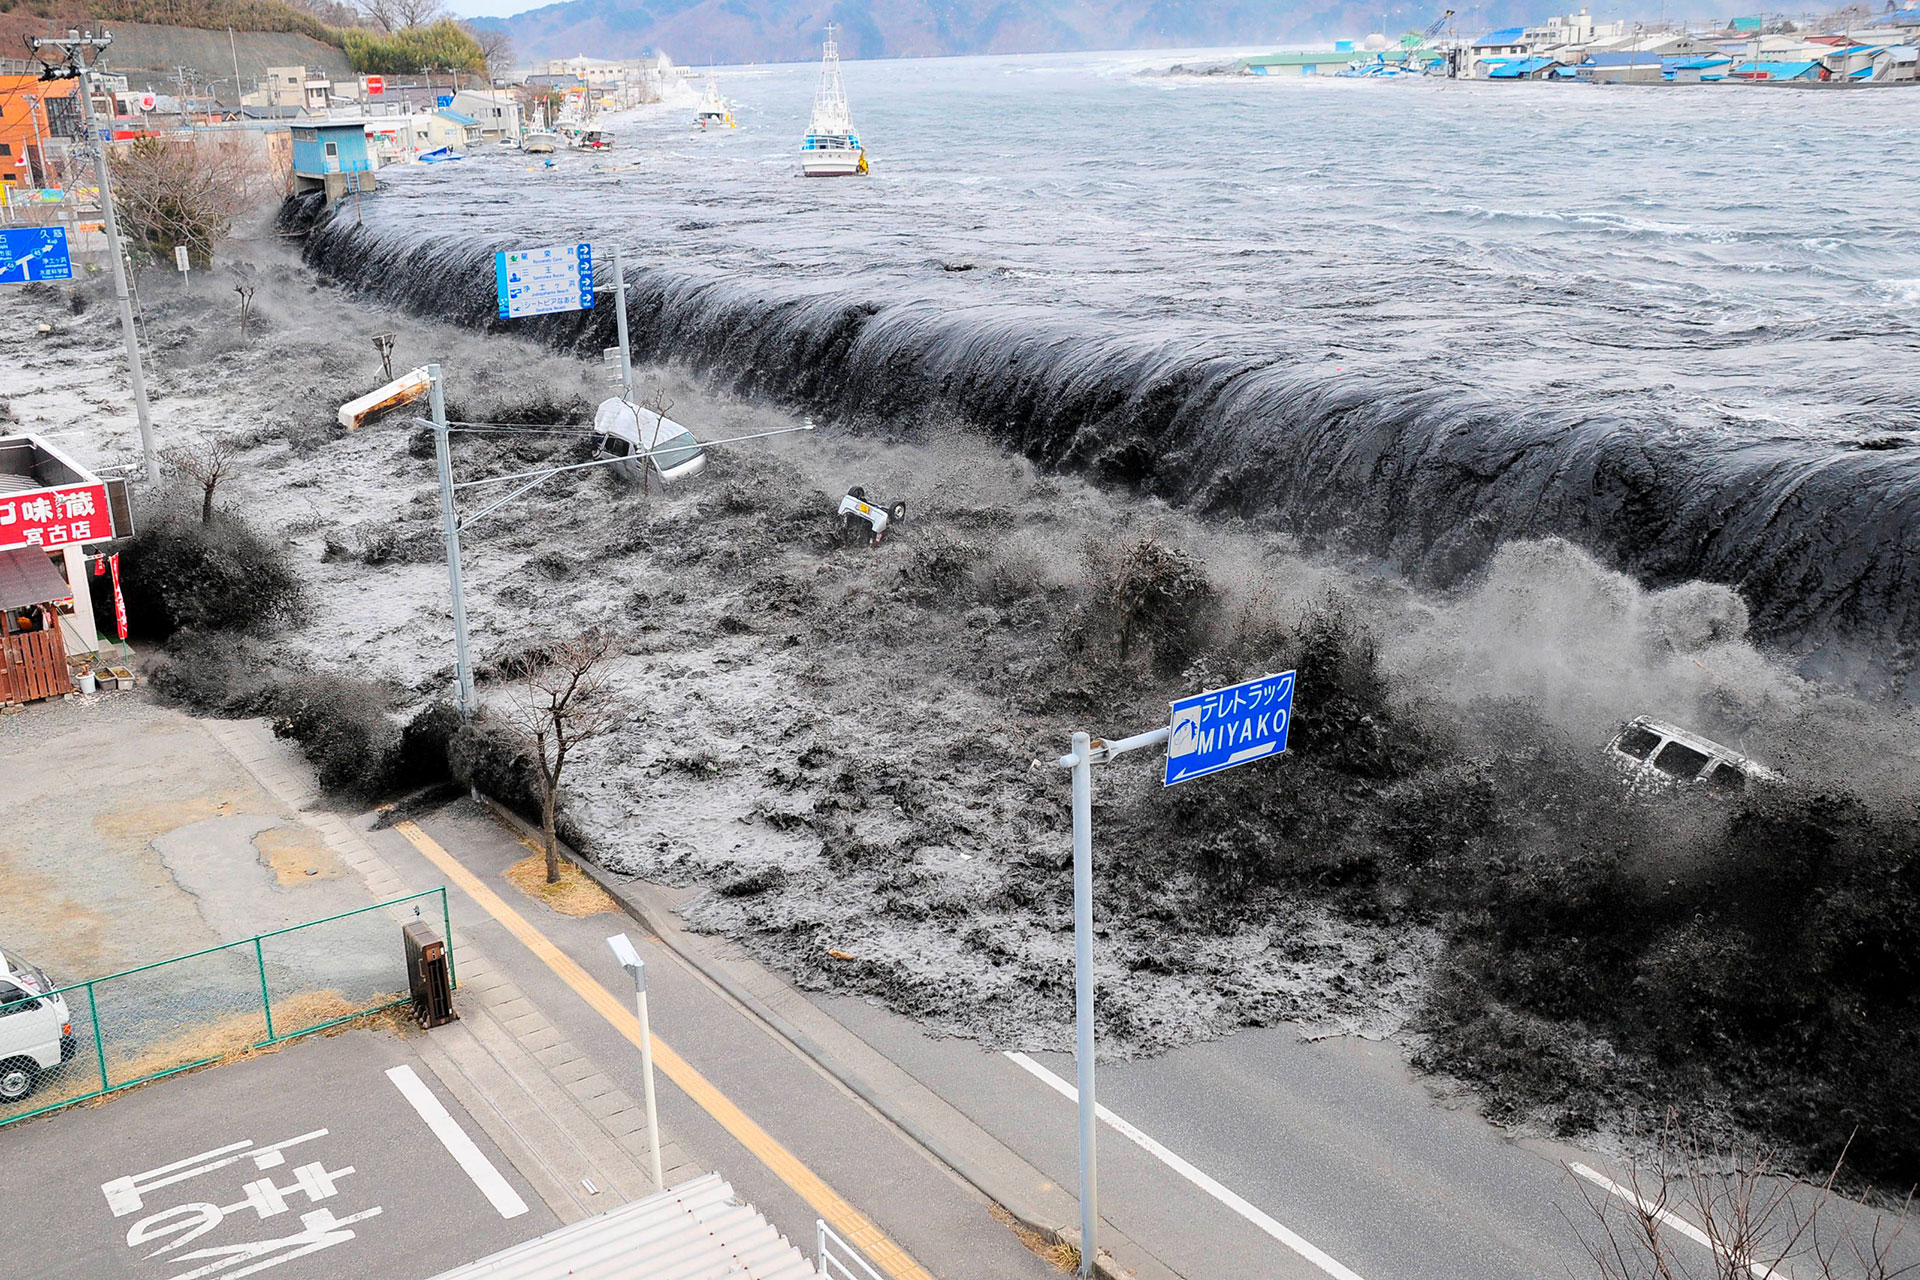 A giant wave tosses large vehicles like children's toys in the Japanese city of Miyako City after an earthquake struck the area March 11, 2011. Photo: Mainichi Shimbun/via Reuters